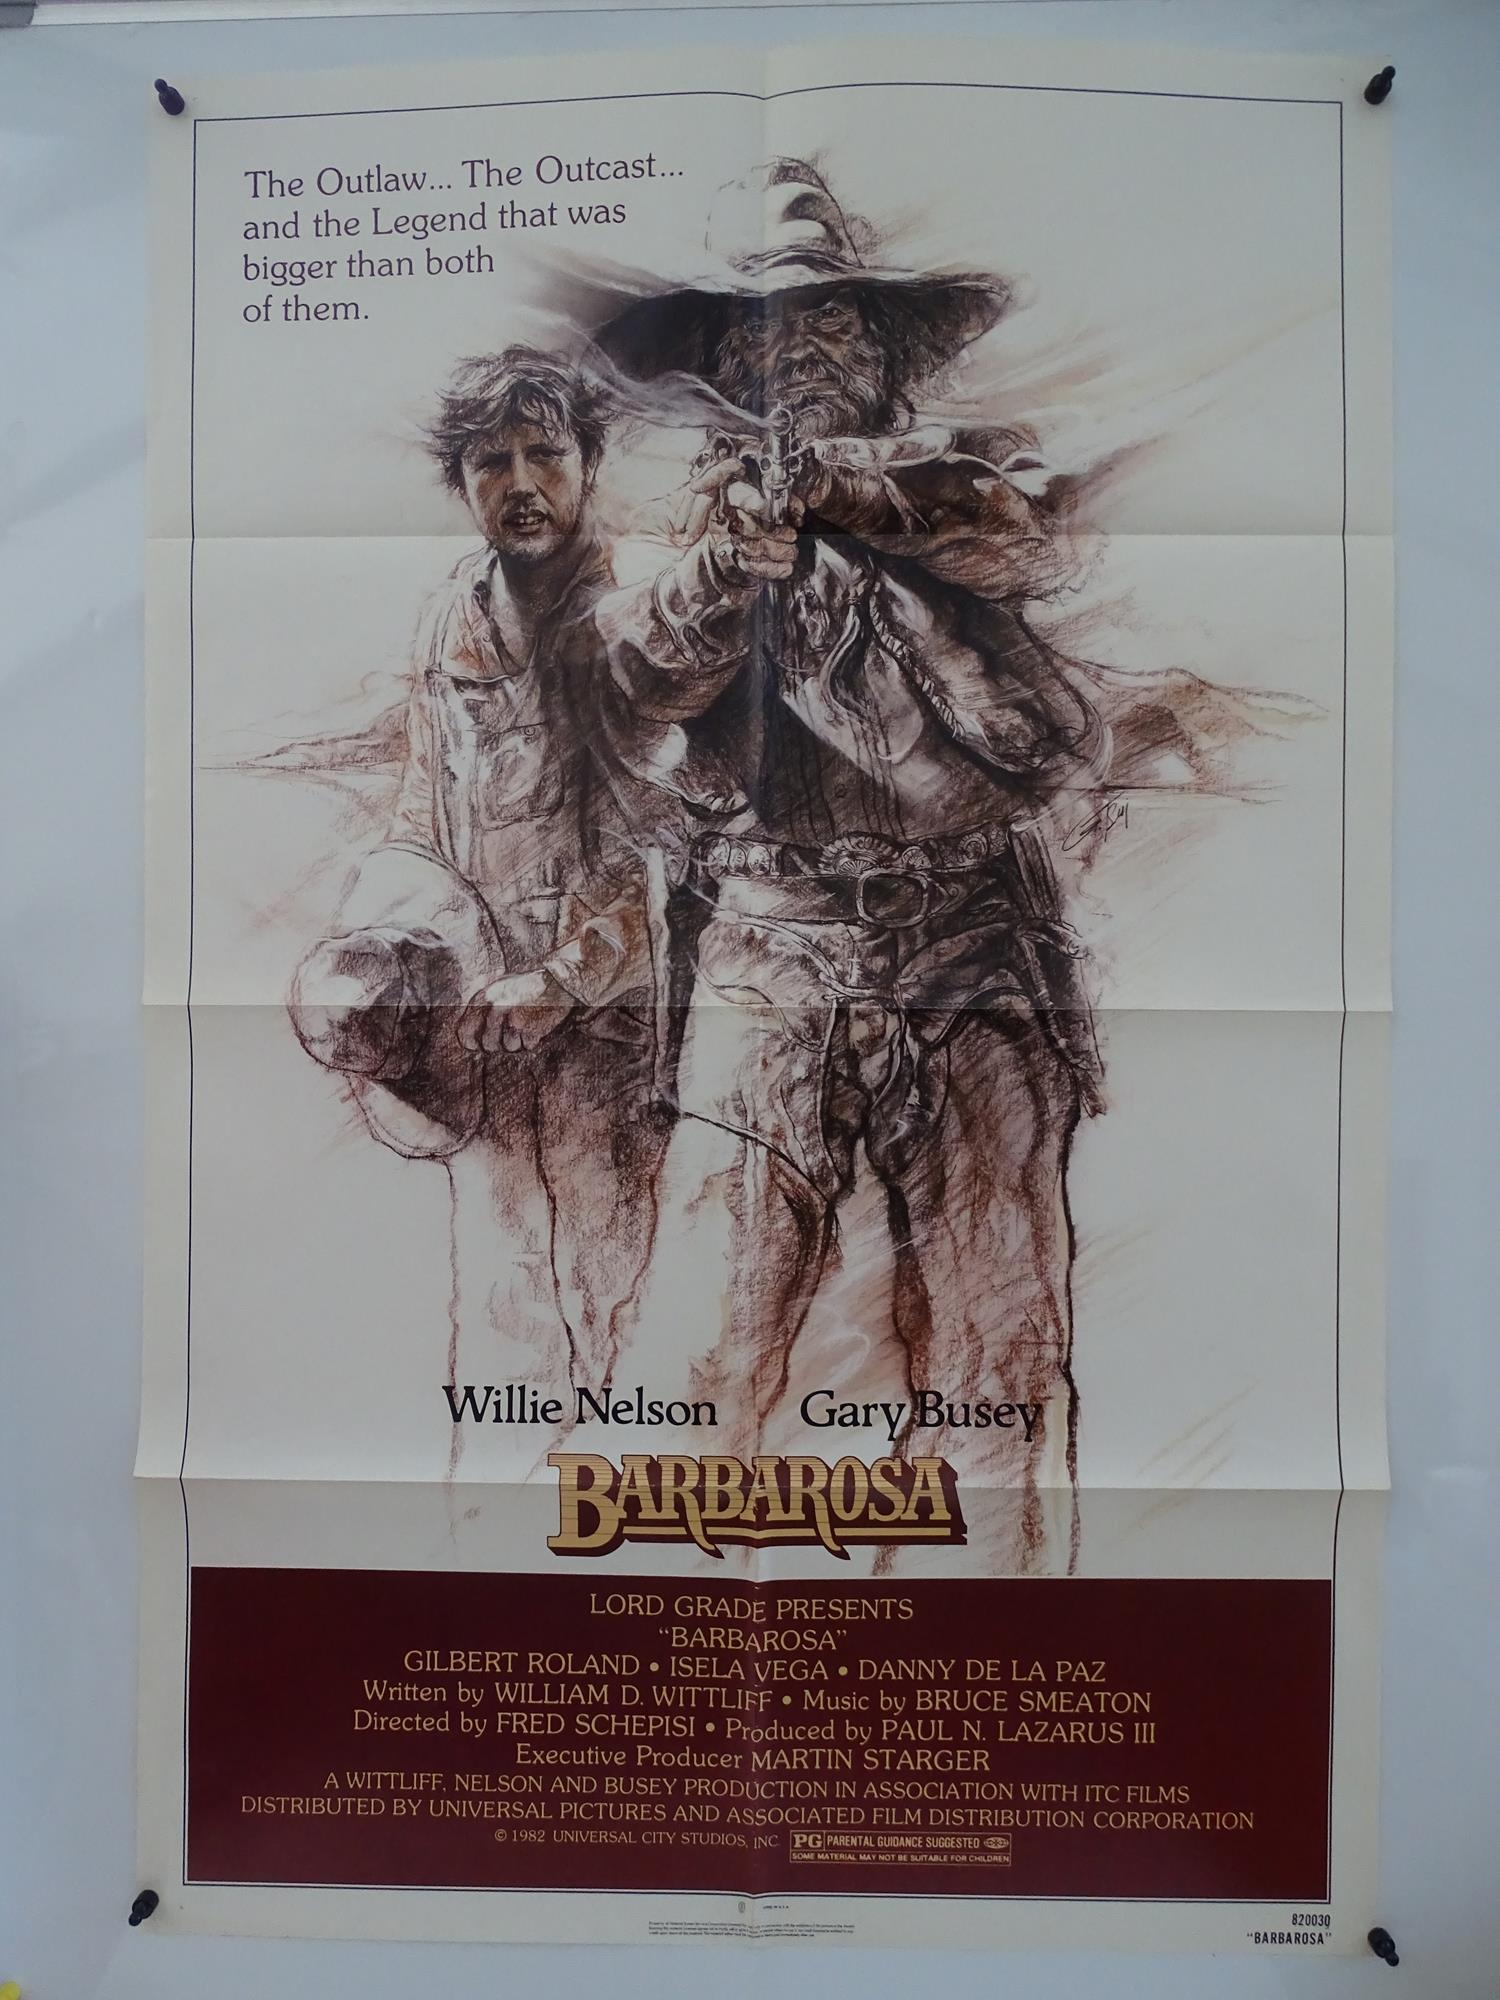 BARBAROSA (1982) - Western starring WILLIE NELSON and GARY BUSEY